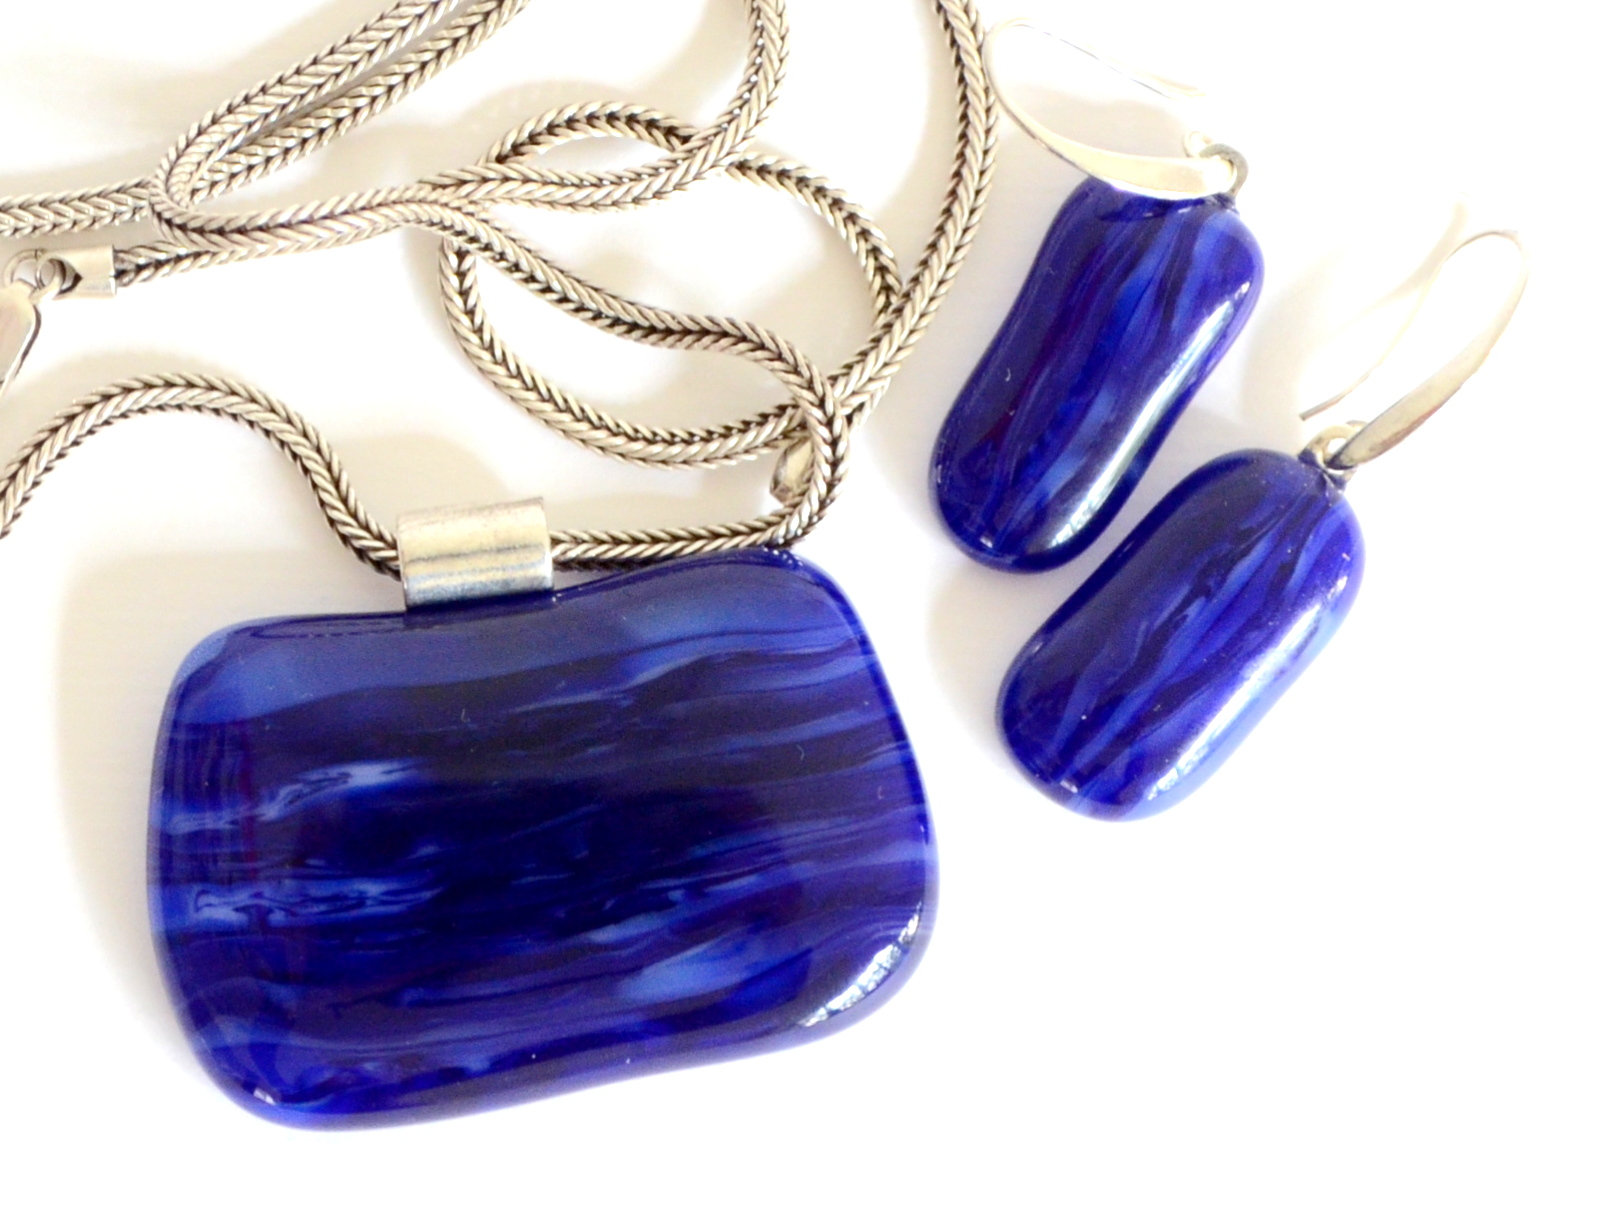 Tranquility - Glass Jewellery Set